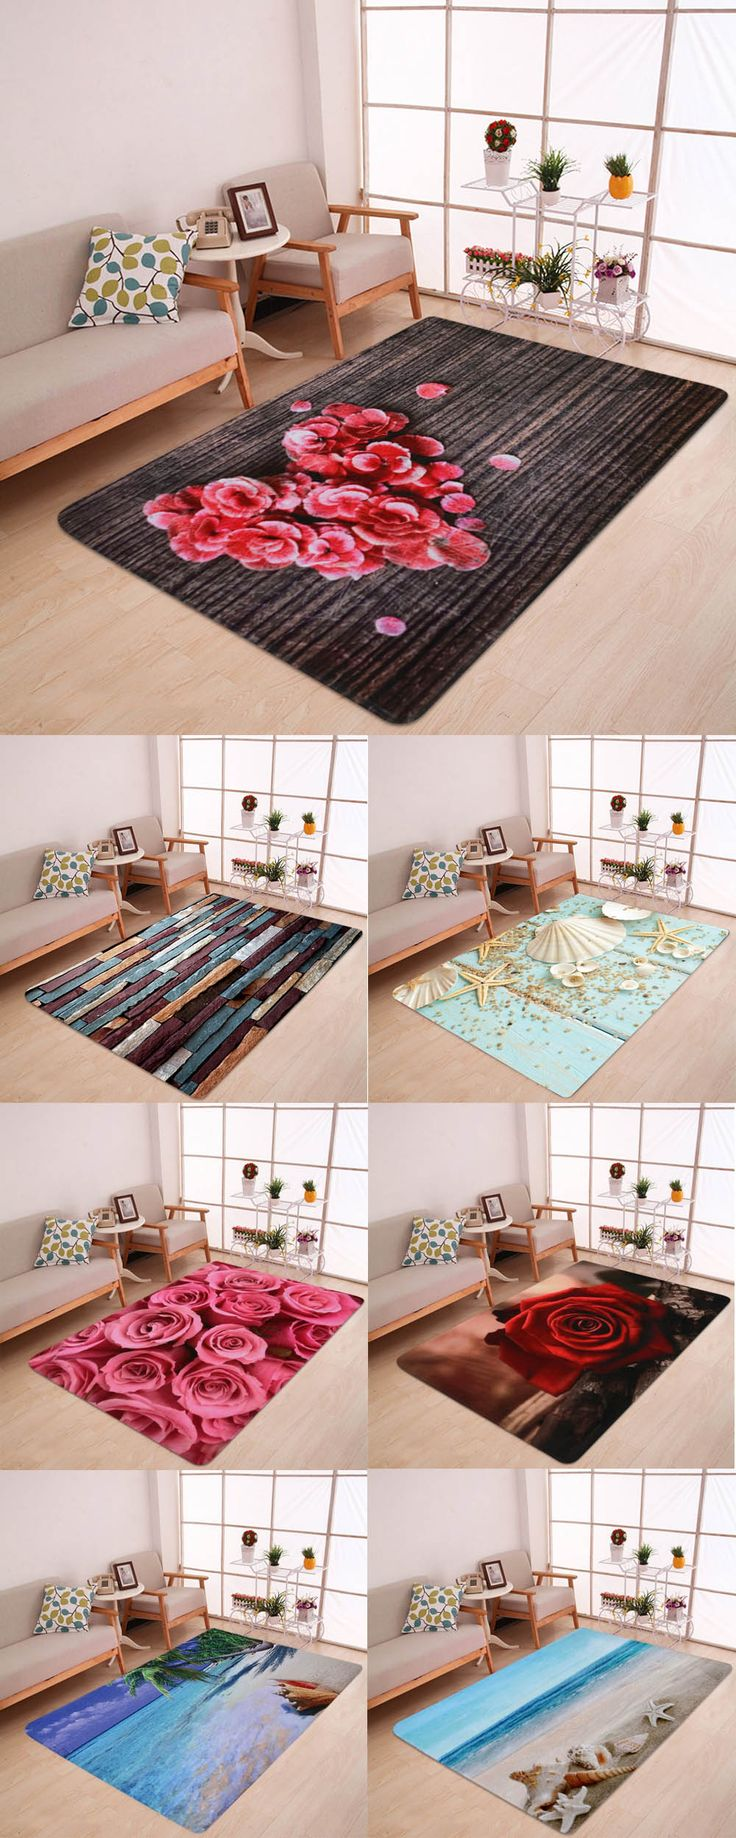 Up to 80% off, Rosewholesale valentines day Water Absorption Area Rug - Red Brown W47 Inch * L63 Inch | Rosewholesale,rosewholesale.com,rosewholesale home decor,rosewholesale valentines day,rosewholesale home decoration,home decor,rug,floor,valentines day decor,hear,flower | #rosewholesale #homedecor #valentinesday #rugs